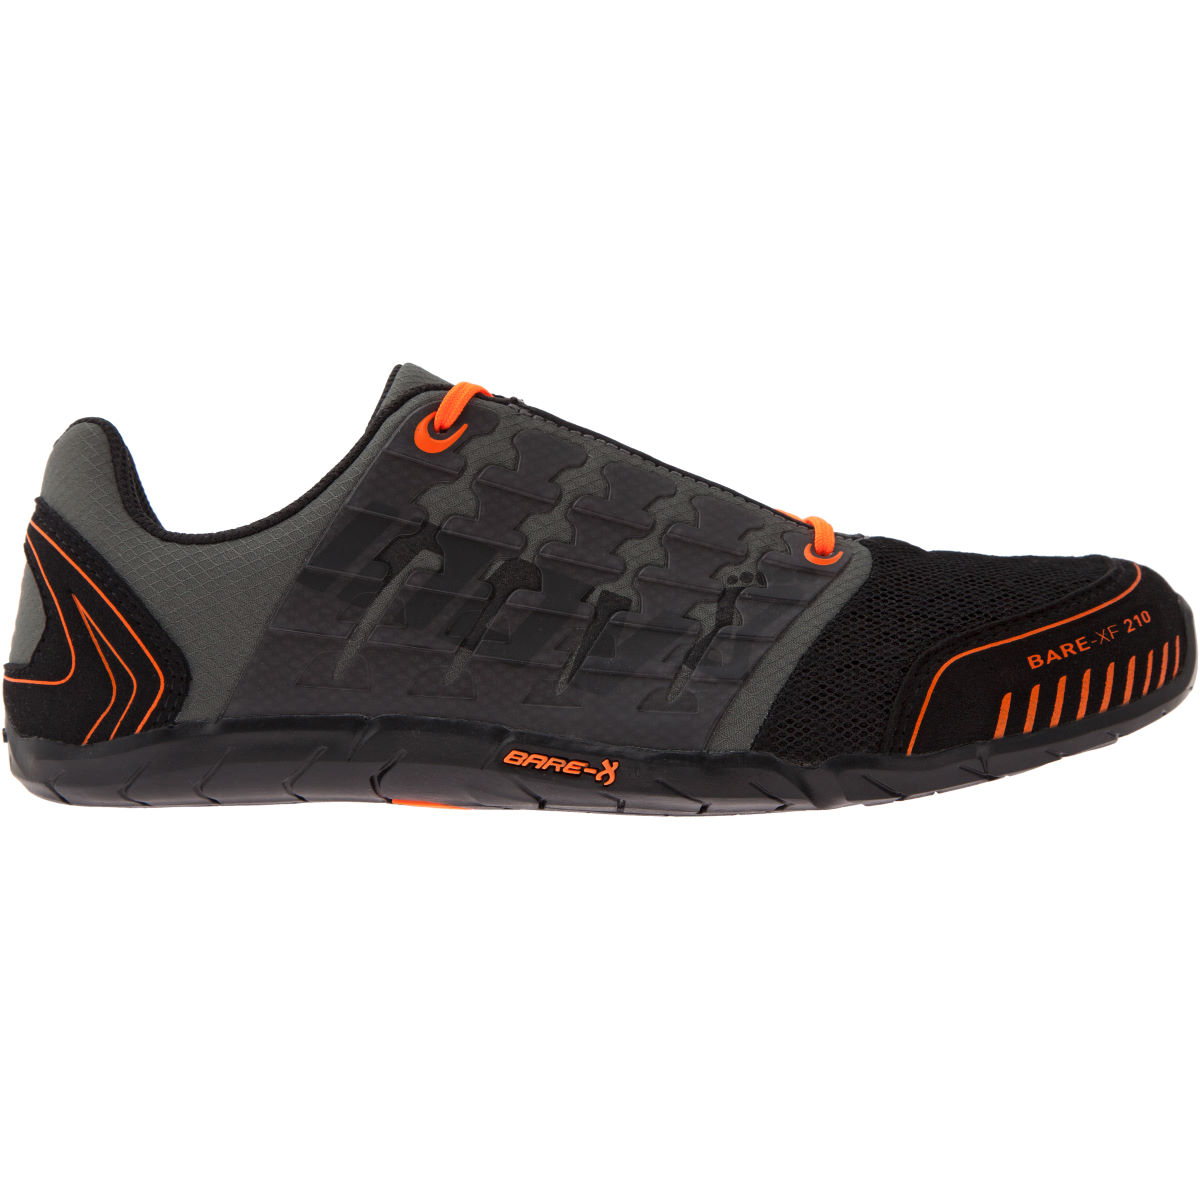 Inov-8 Bare-XF 210 Shoes (SS16) - UK 6.5 Black/Orange